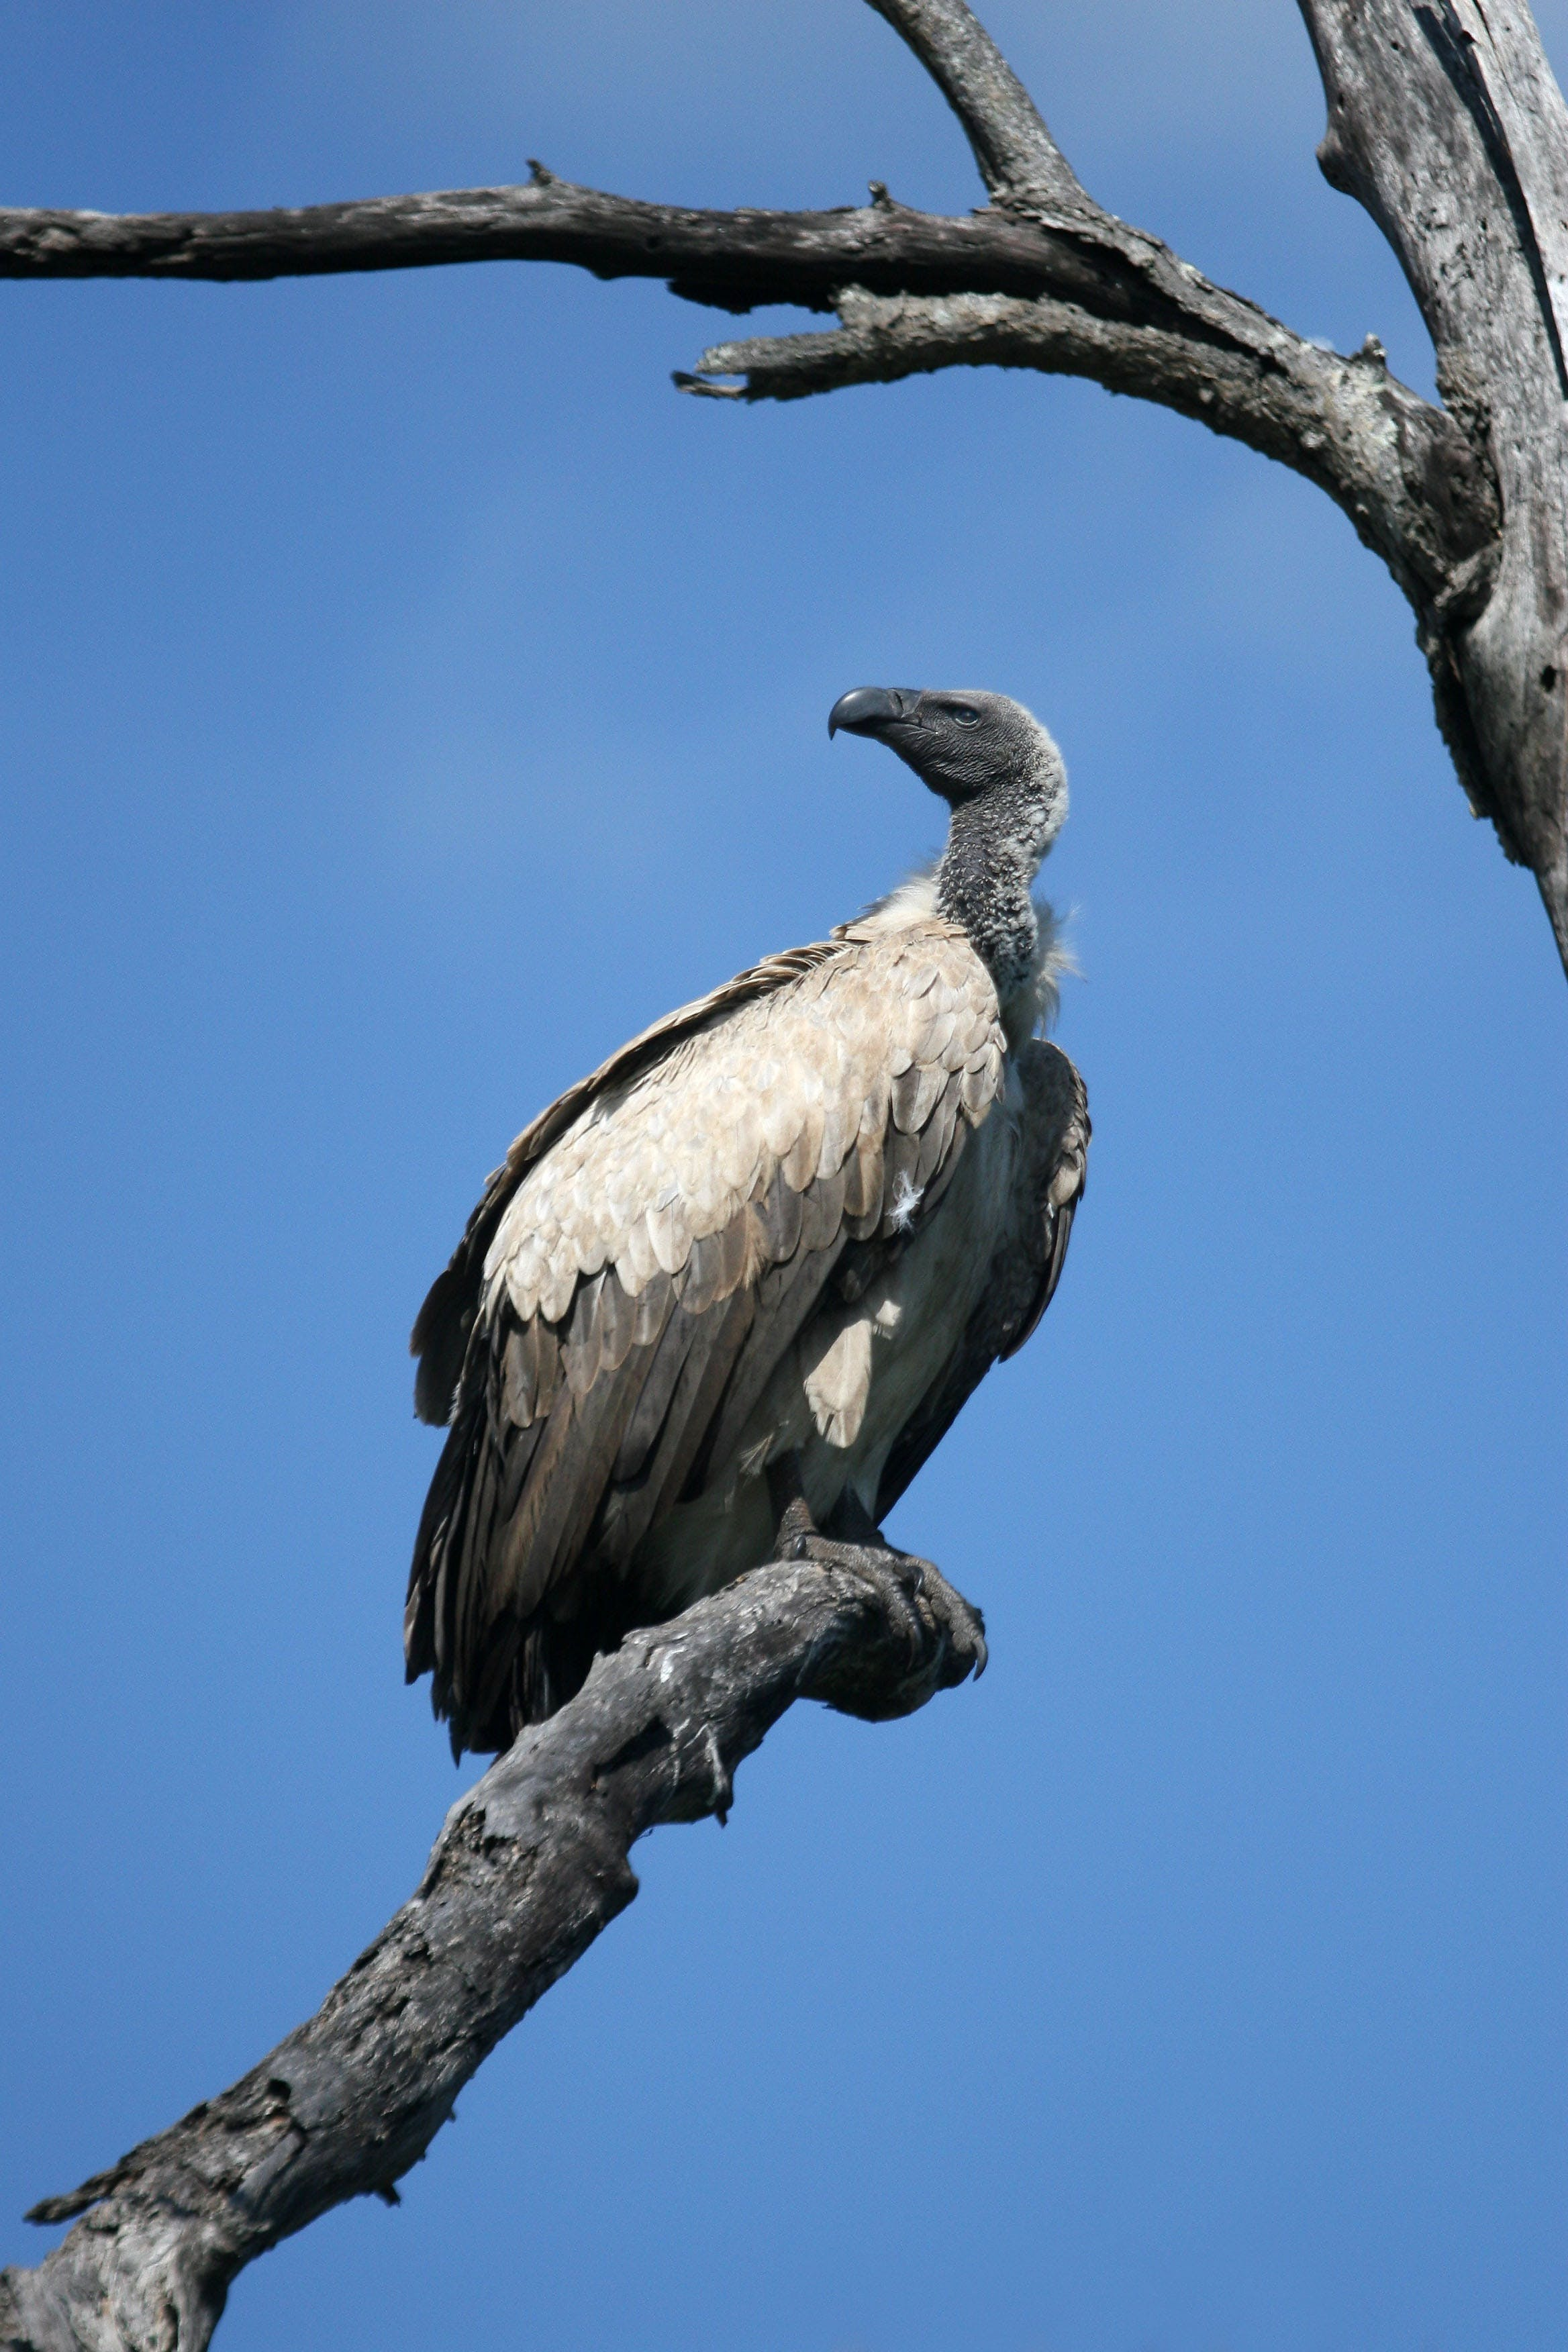 Black and Gray Vulture on Gray Wither Tree during Daytime